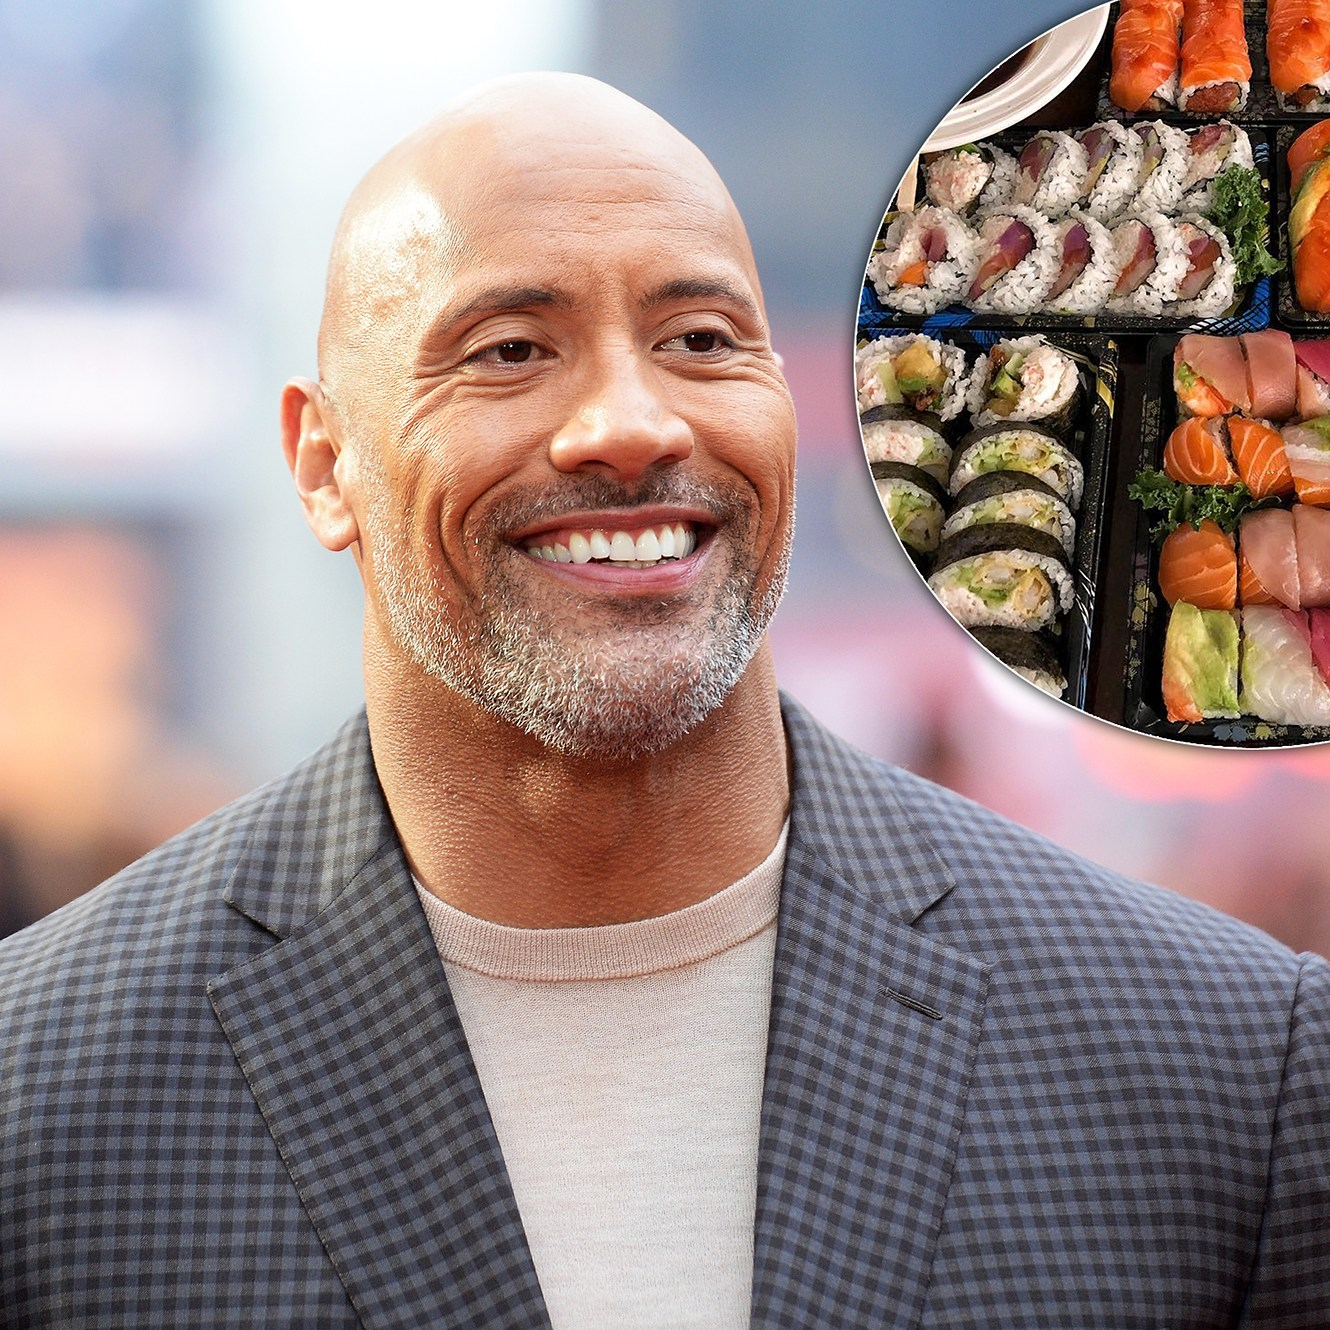 Dwayne Johnson's 'Cheat Meals' Are in a League of Their Own, and He Knows It: 'I Know How to Party'